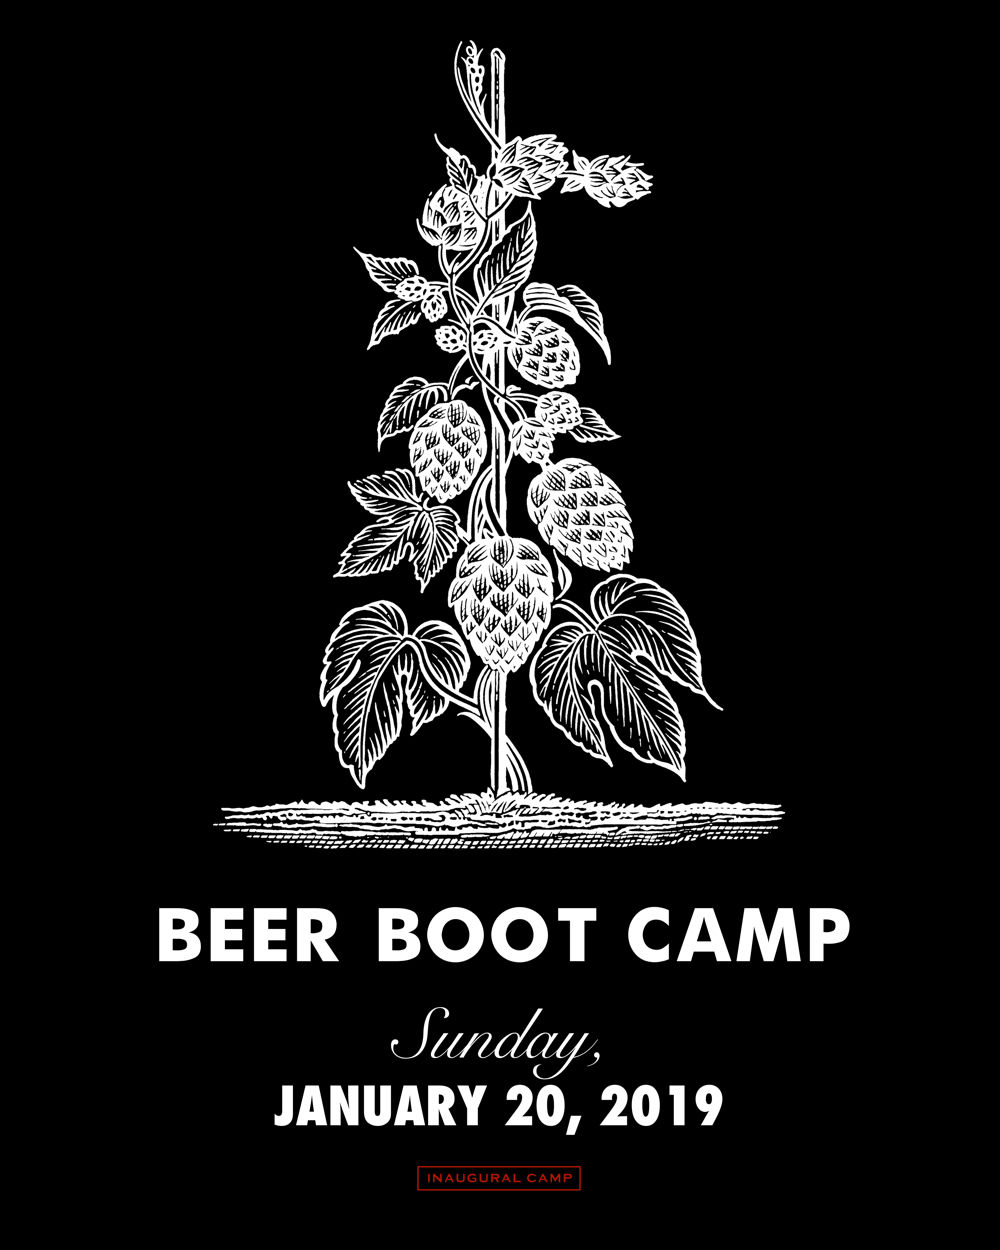 Beer Boot Camp